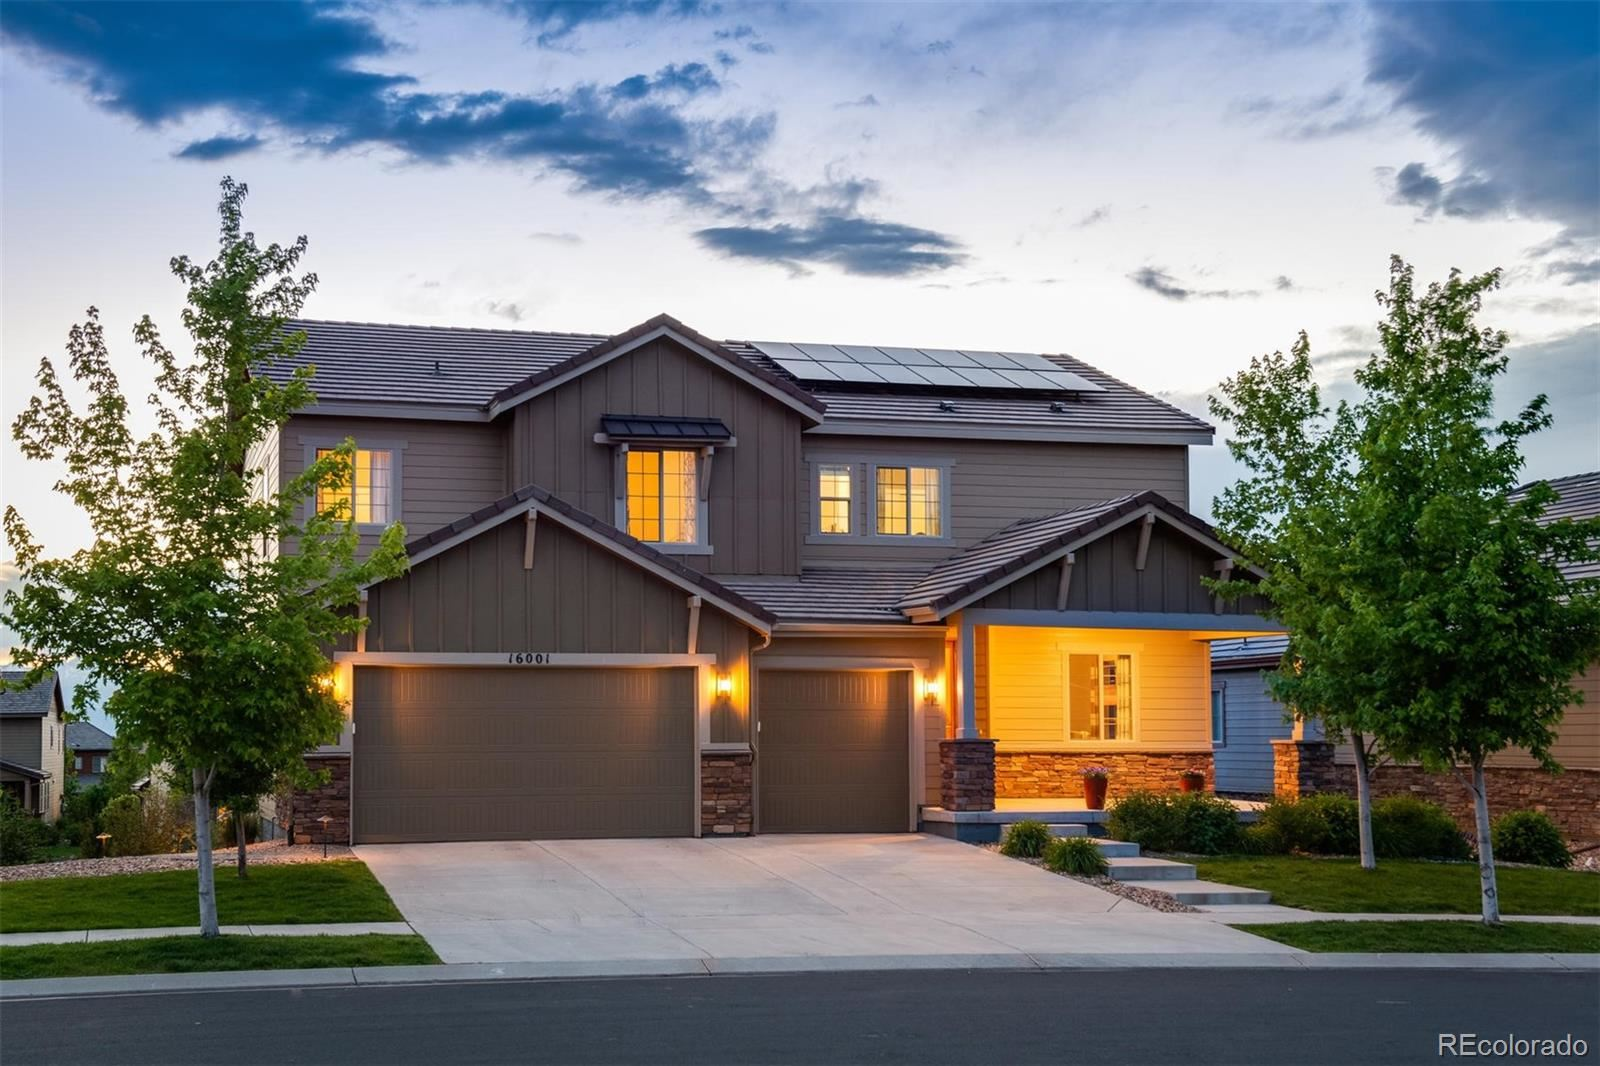 16001 Lookout Point, Broomfield, CO 80023 - #: 2057750